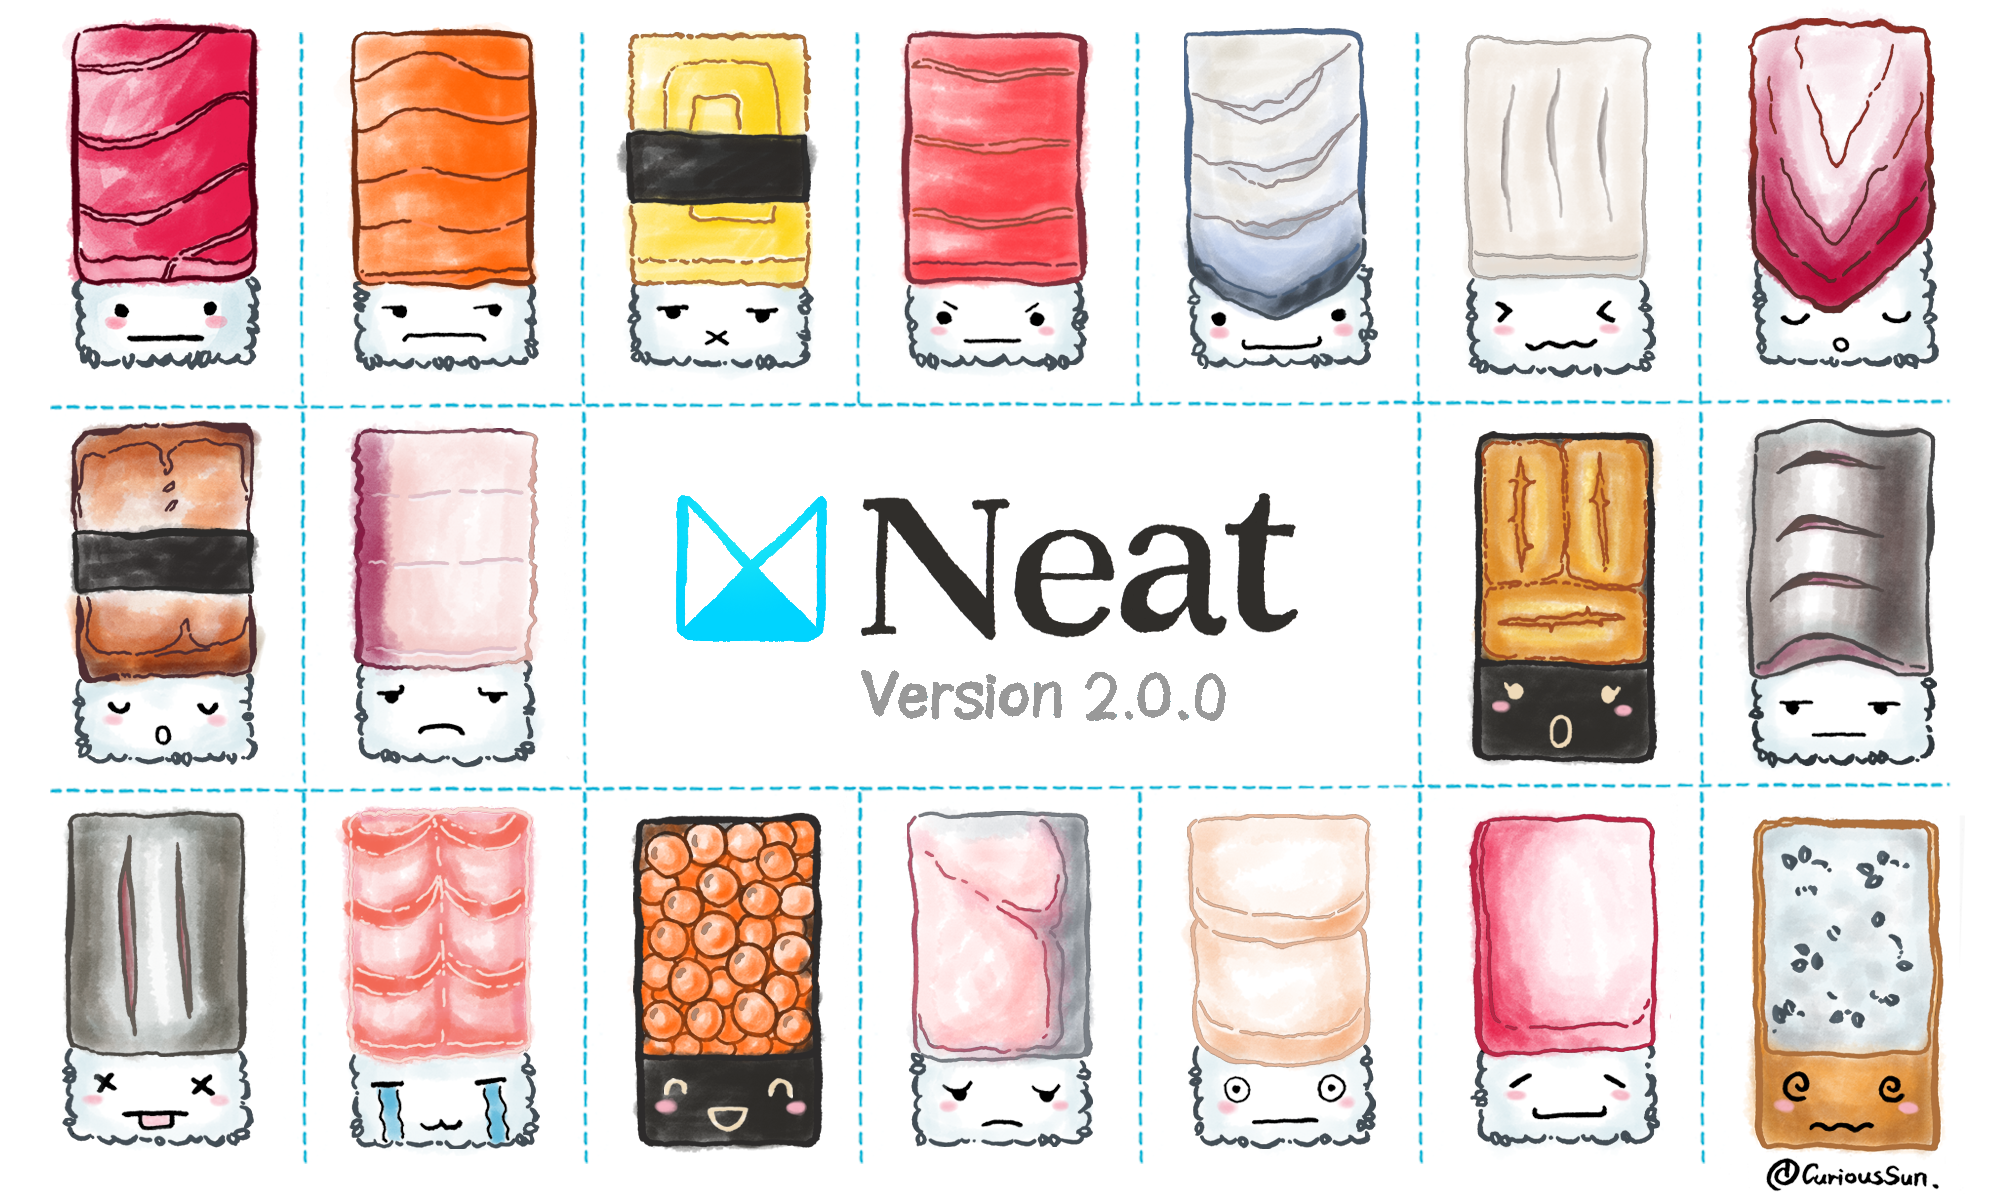 An illustration of cartoon sushi celebrating the release of Neat 2.0 from thoughtbot